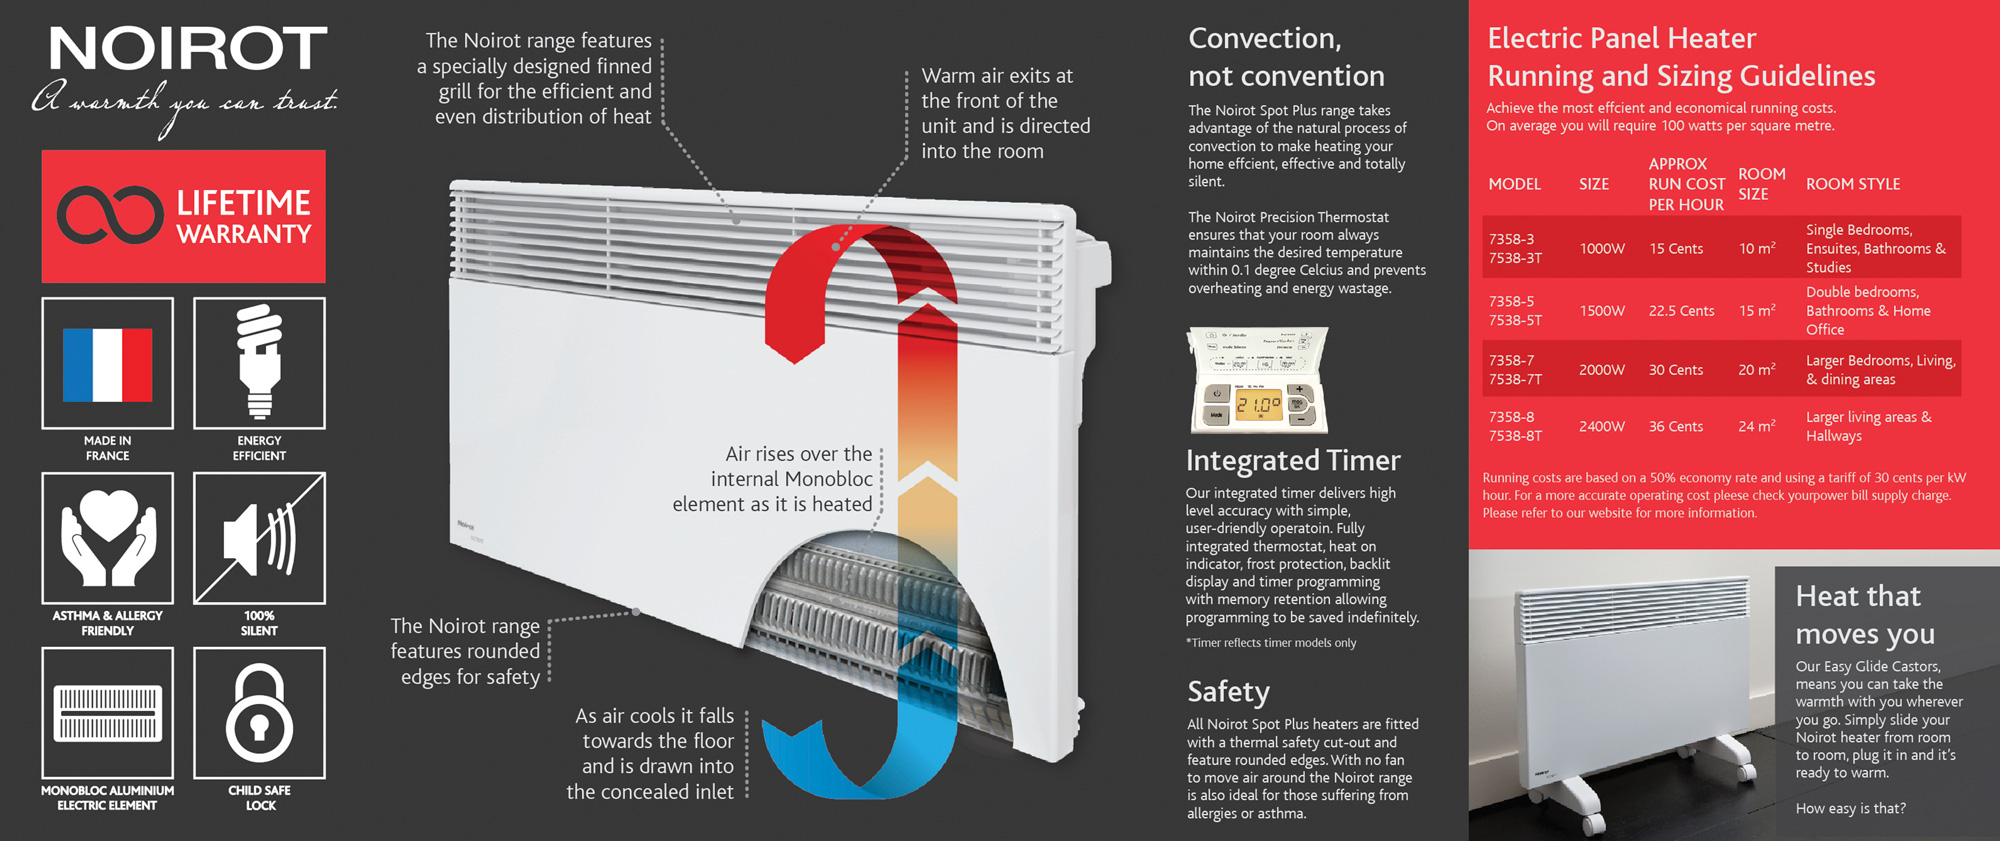 Energy Saving Features of Noirot Heaters -